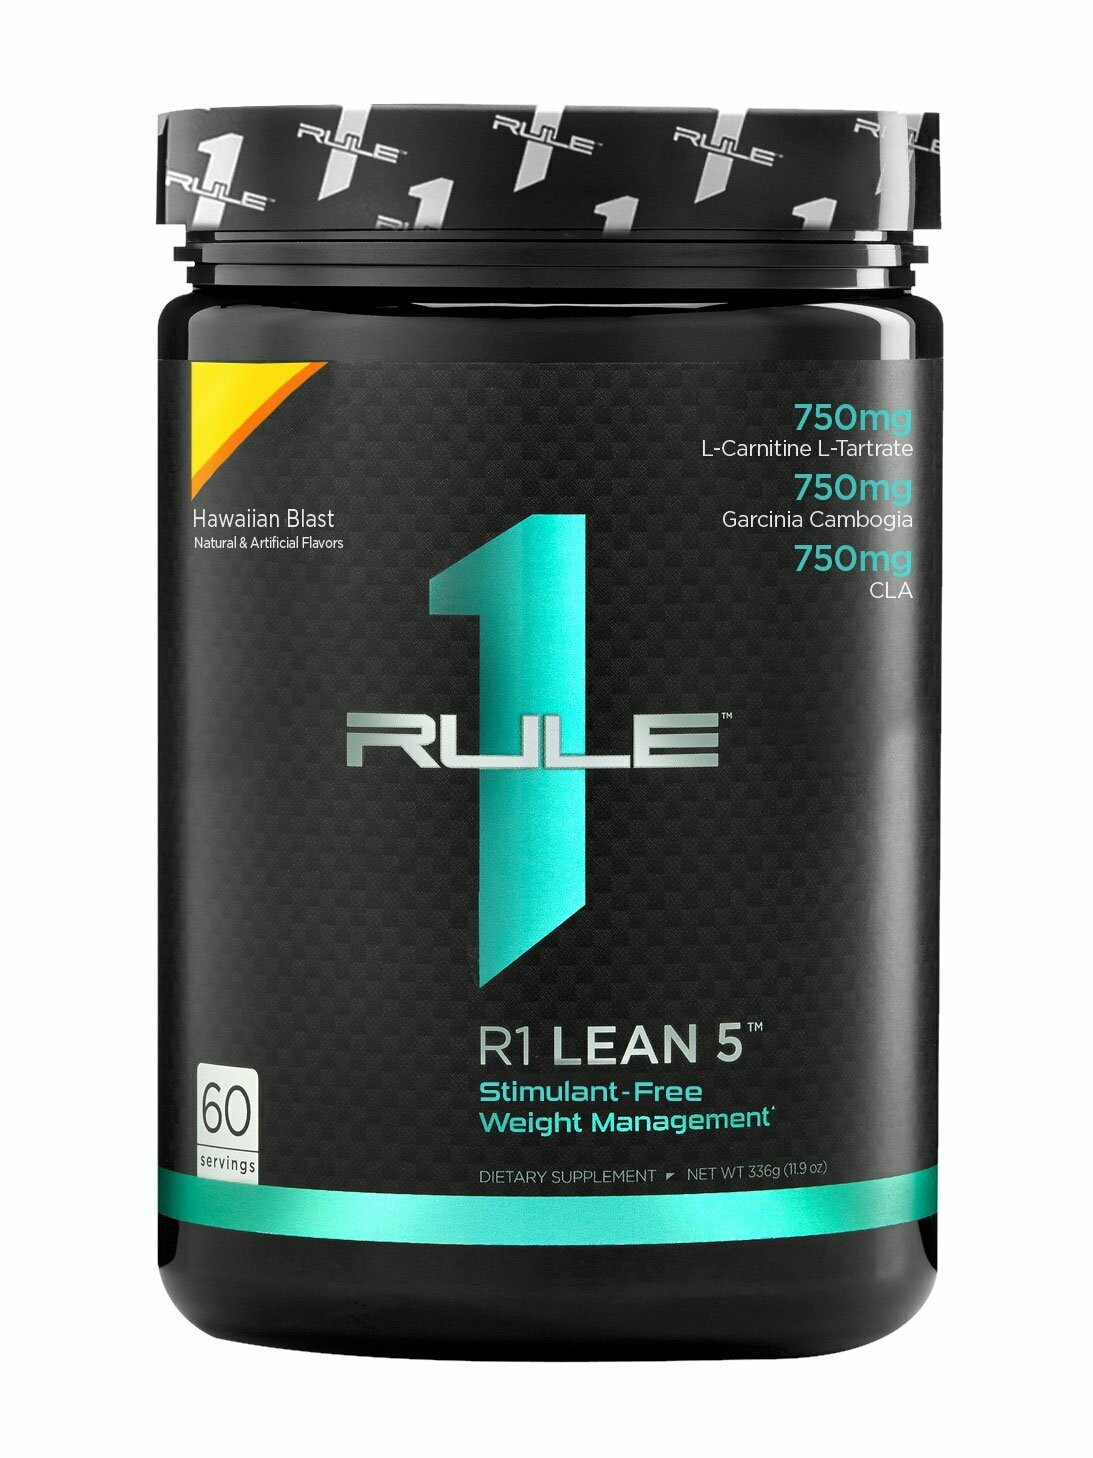 Rule 1 Lean 5 Stim Free Thermogenic